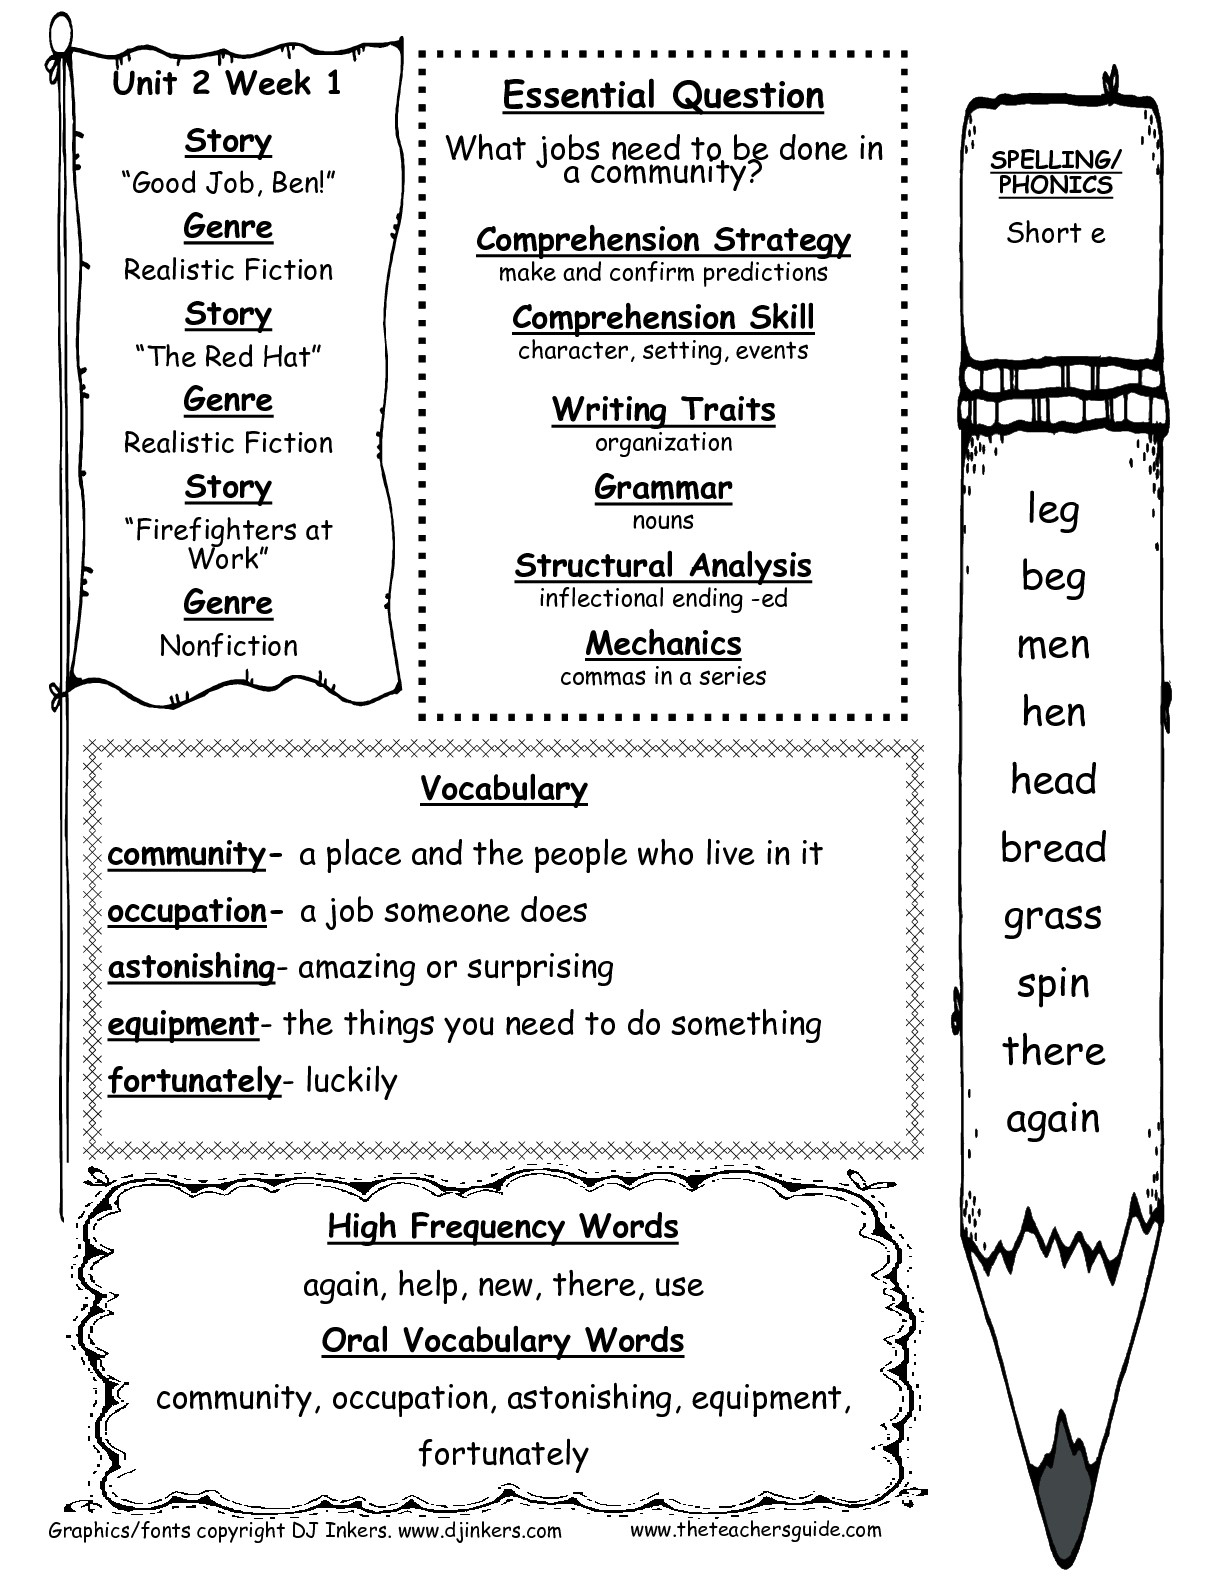 Mcgraw-Hill Wonders First Grade Resources And Printouts | Free Printable English Worksheets For 1St Grade